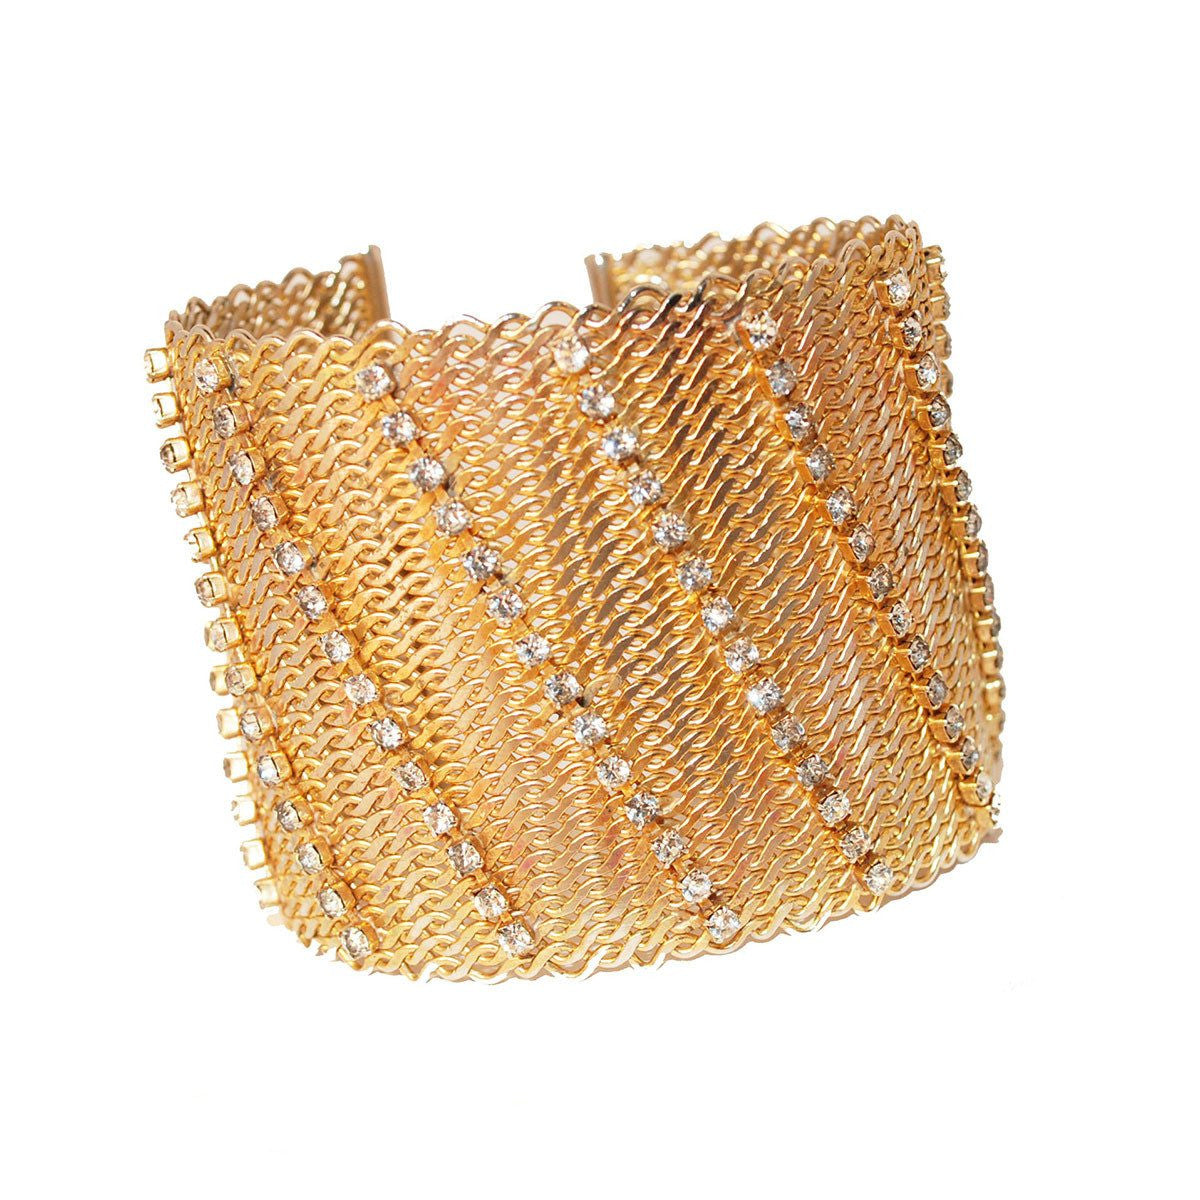 Mid Century Cuff Bracelet by Hobe, Rhinestones on Gold Metal Mesh